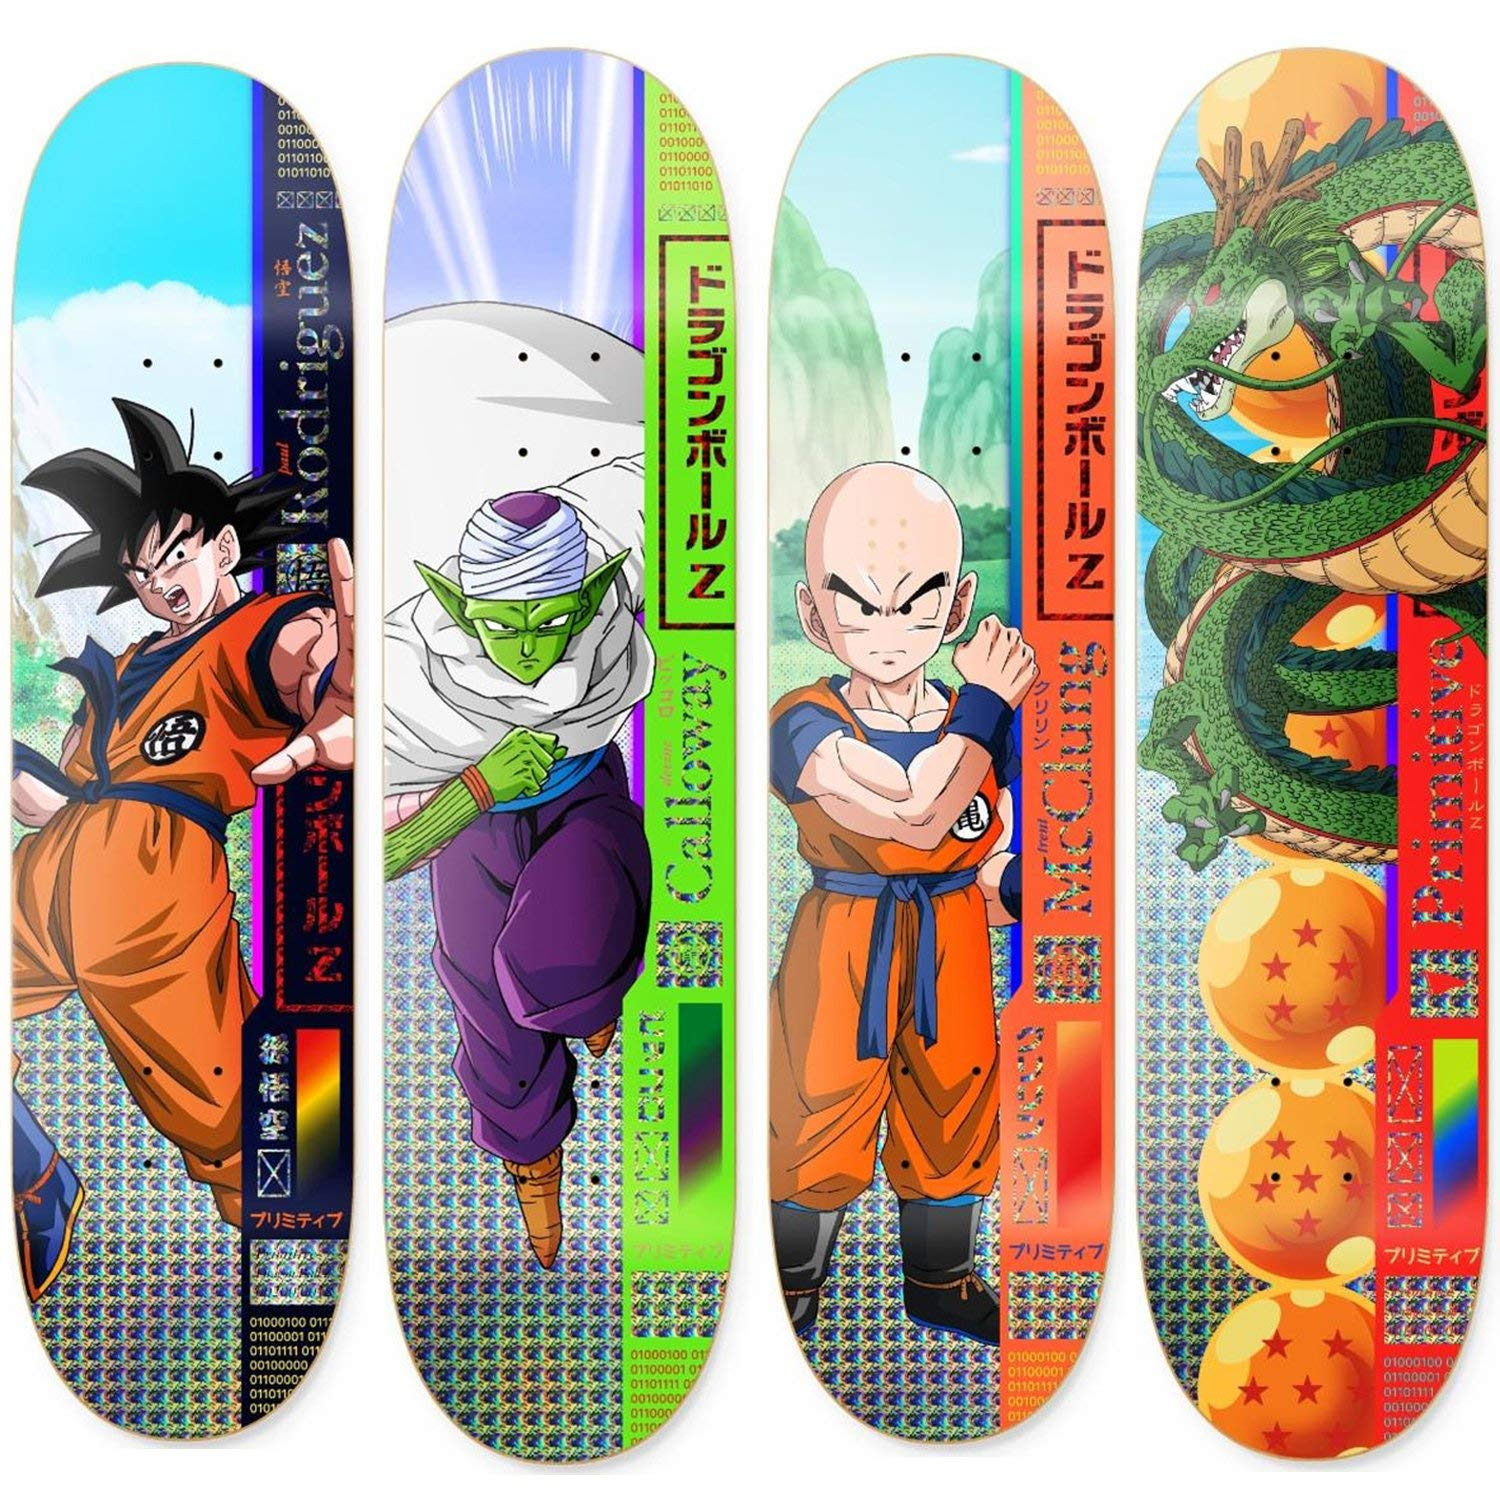 Primitive Dragon Ball Z Skateboard Decks Goku Piccolo Krillin Shenron 4 Pack